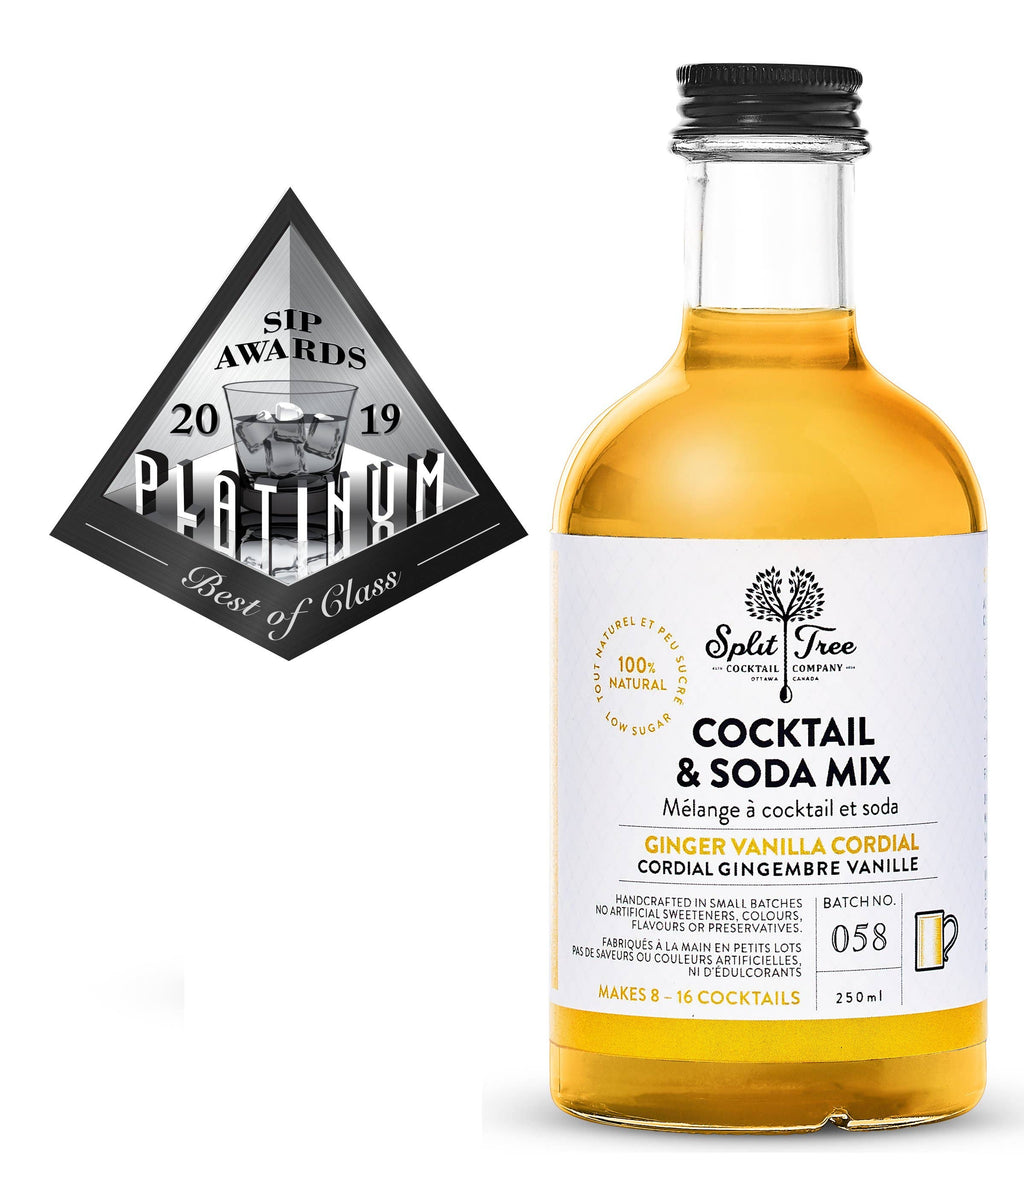 Ginger Vanilla Cordial Cocktail and Soda Mix